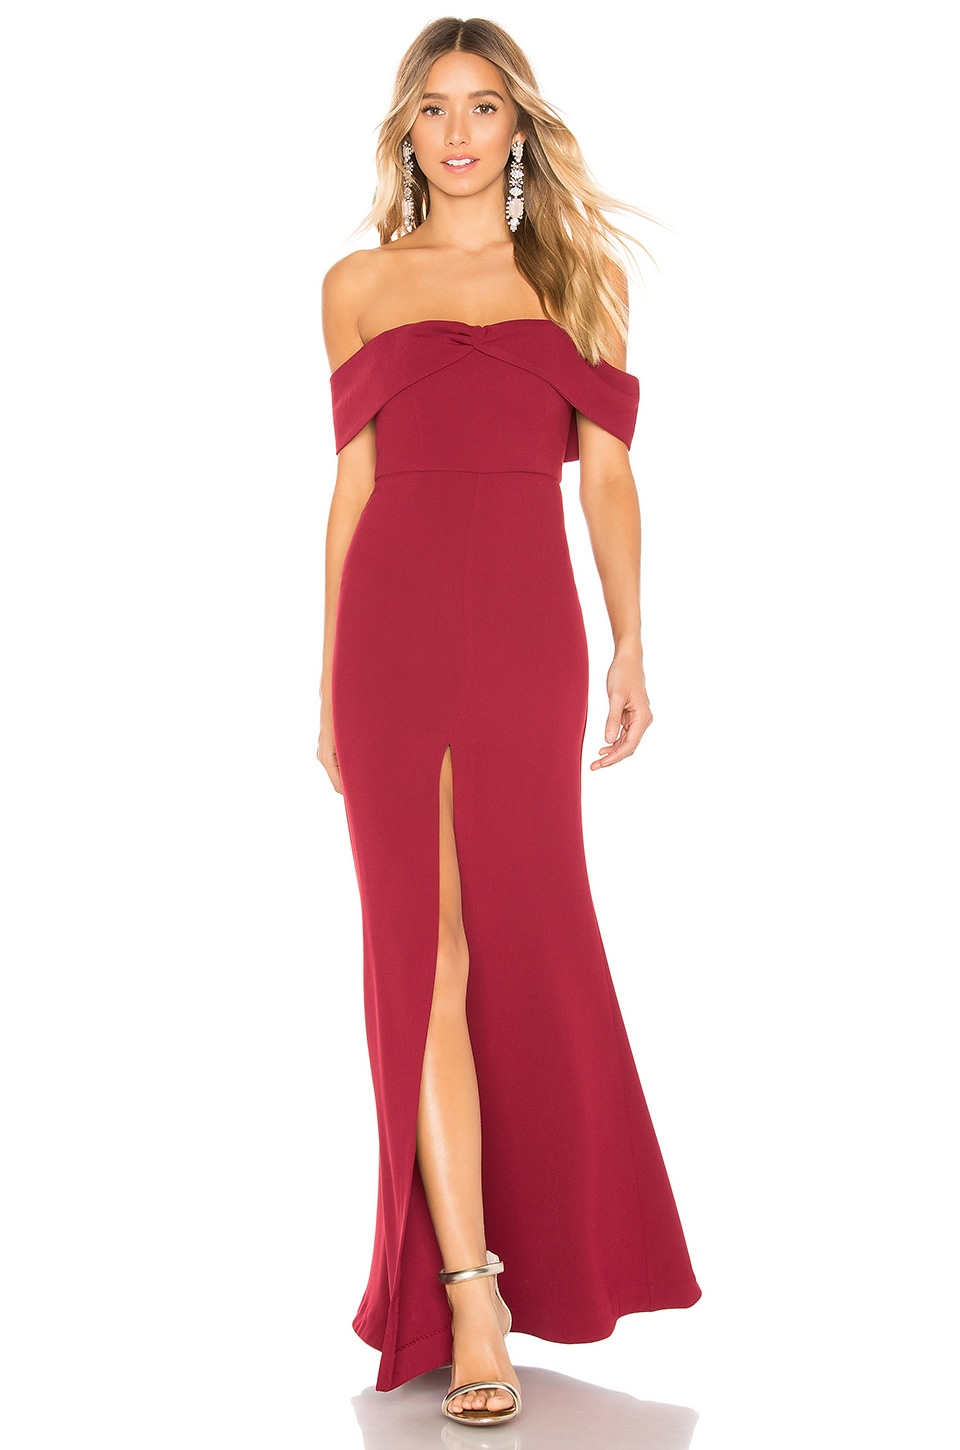 Lovers + Friends Danica Gown in Ruby